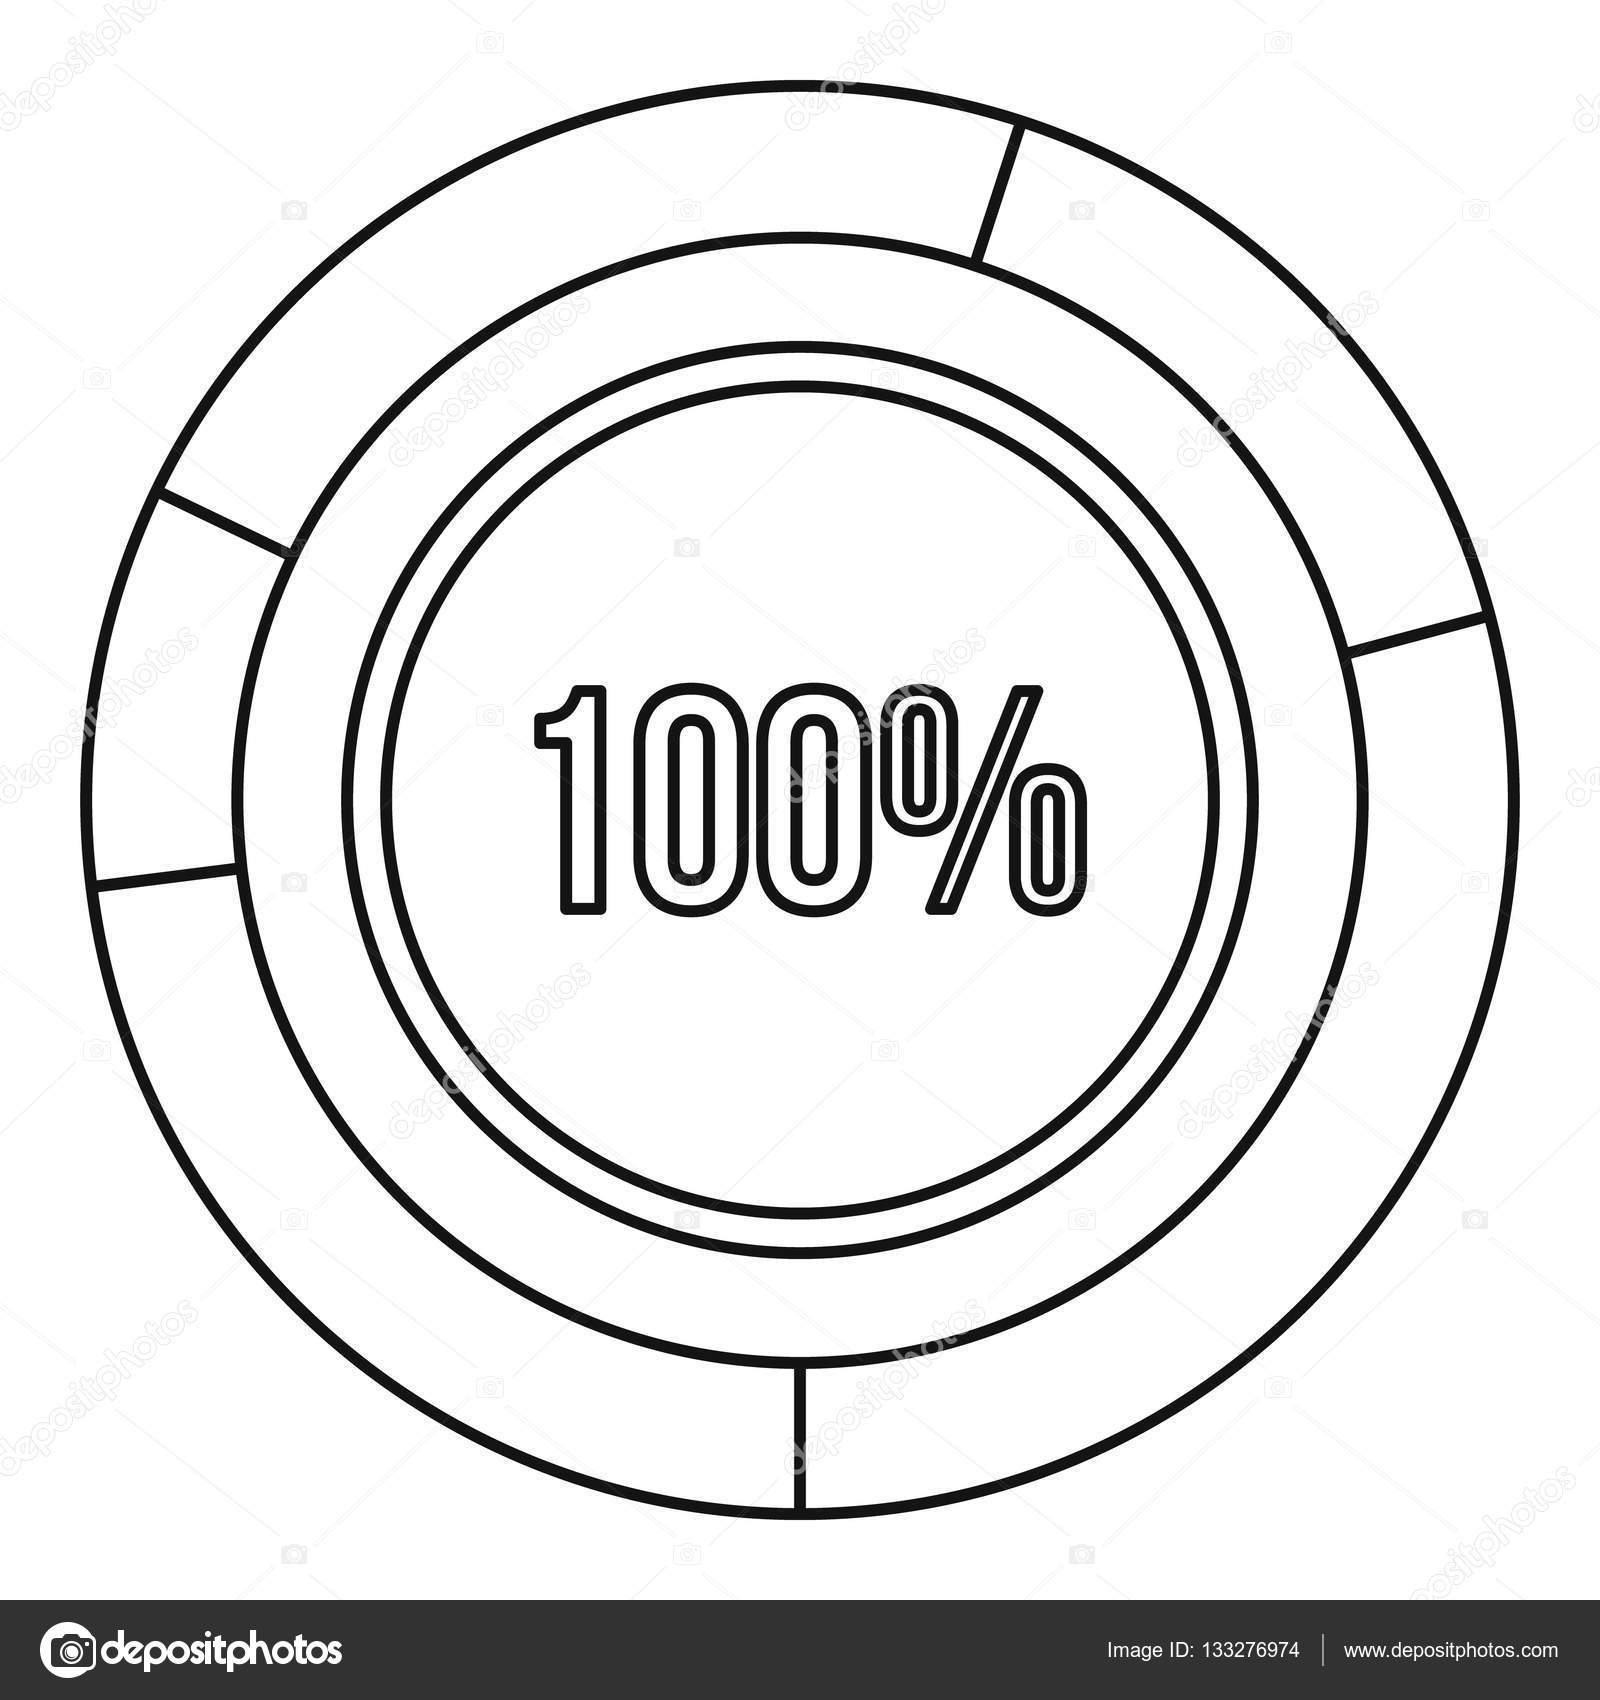 Pie chart circle graph 100 percent icon stock vector ylivdesign pie chart circle graph 100 percent icon stock vector nvjuhfo Choice Image